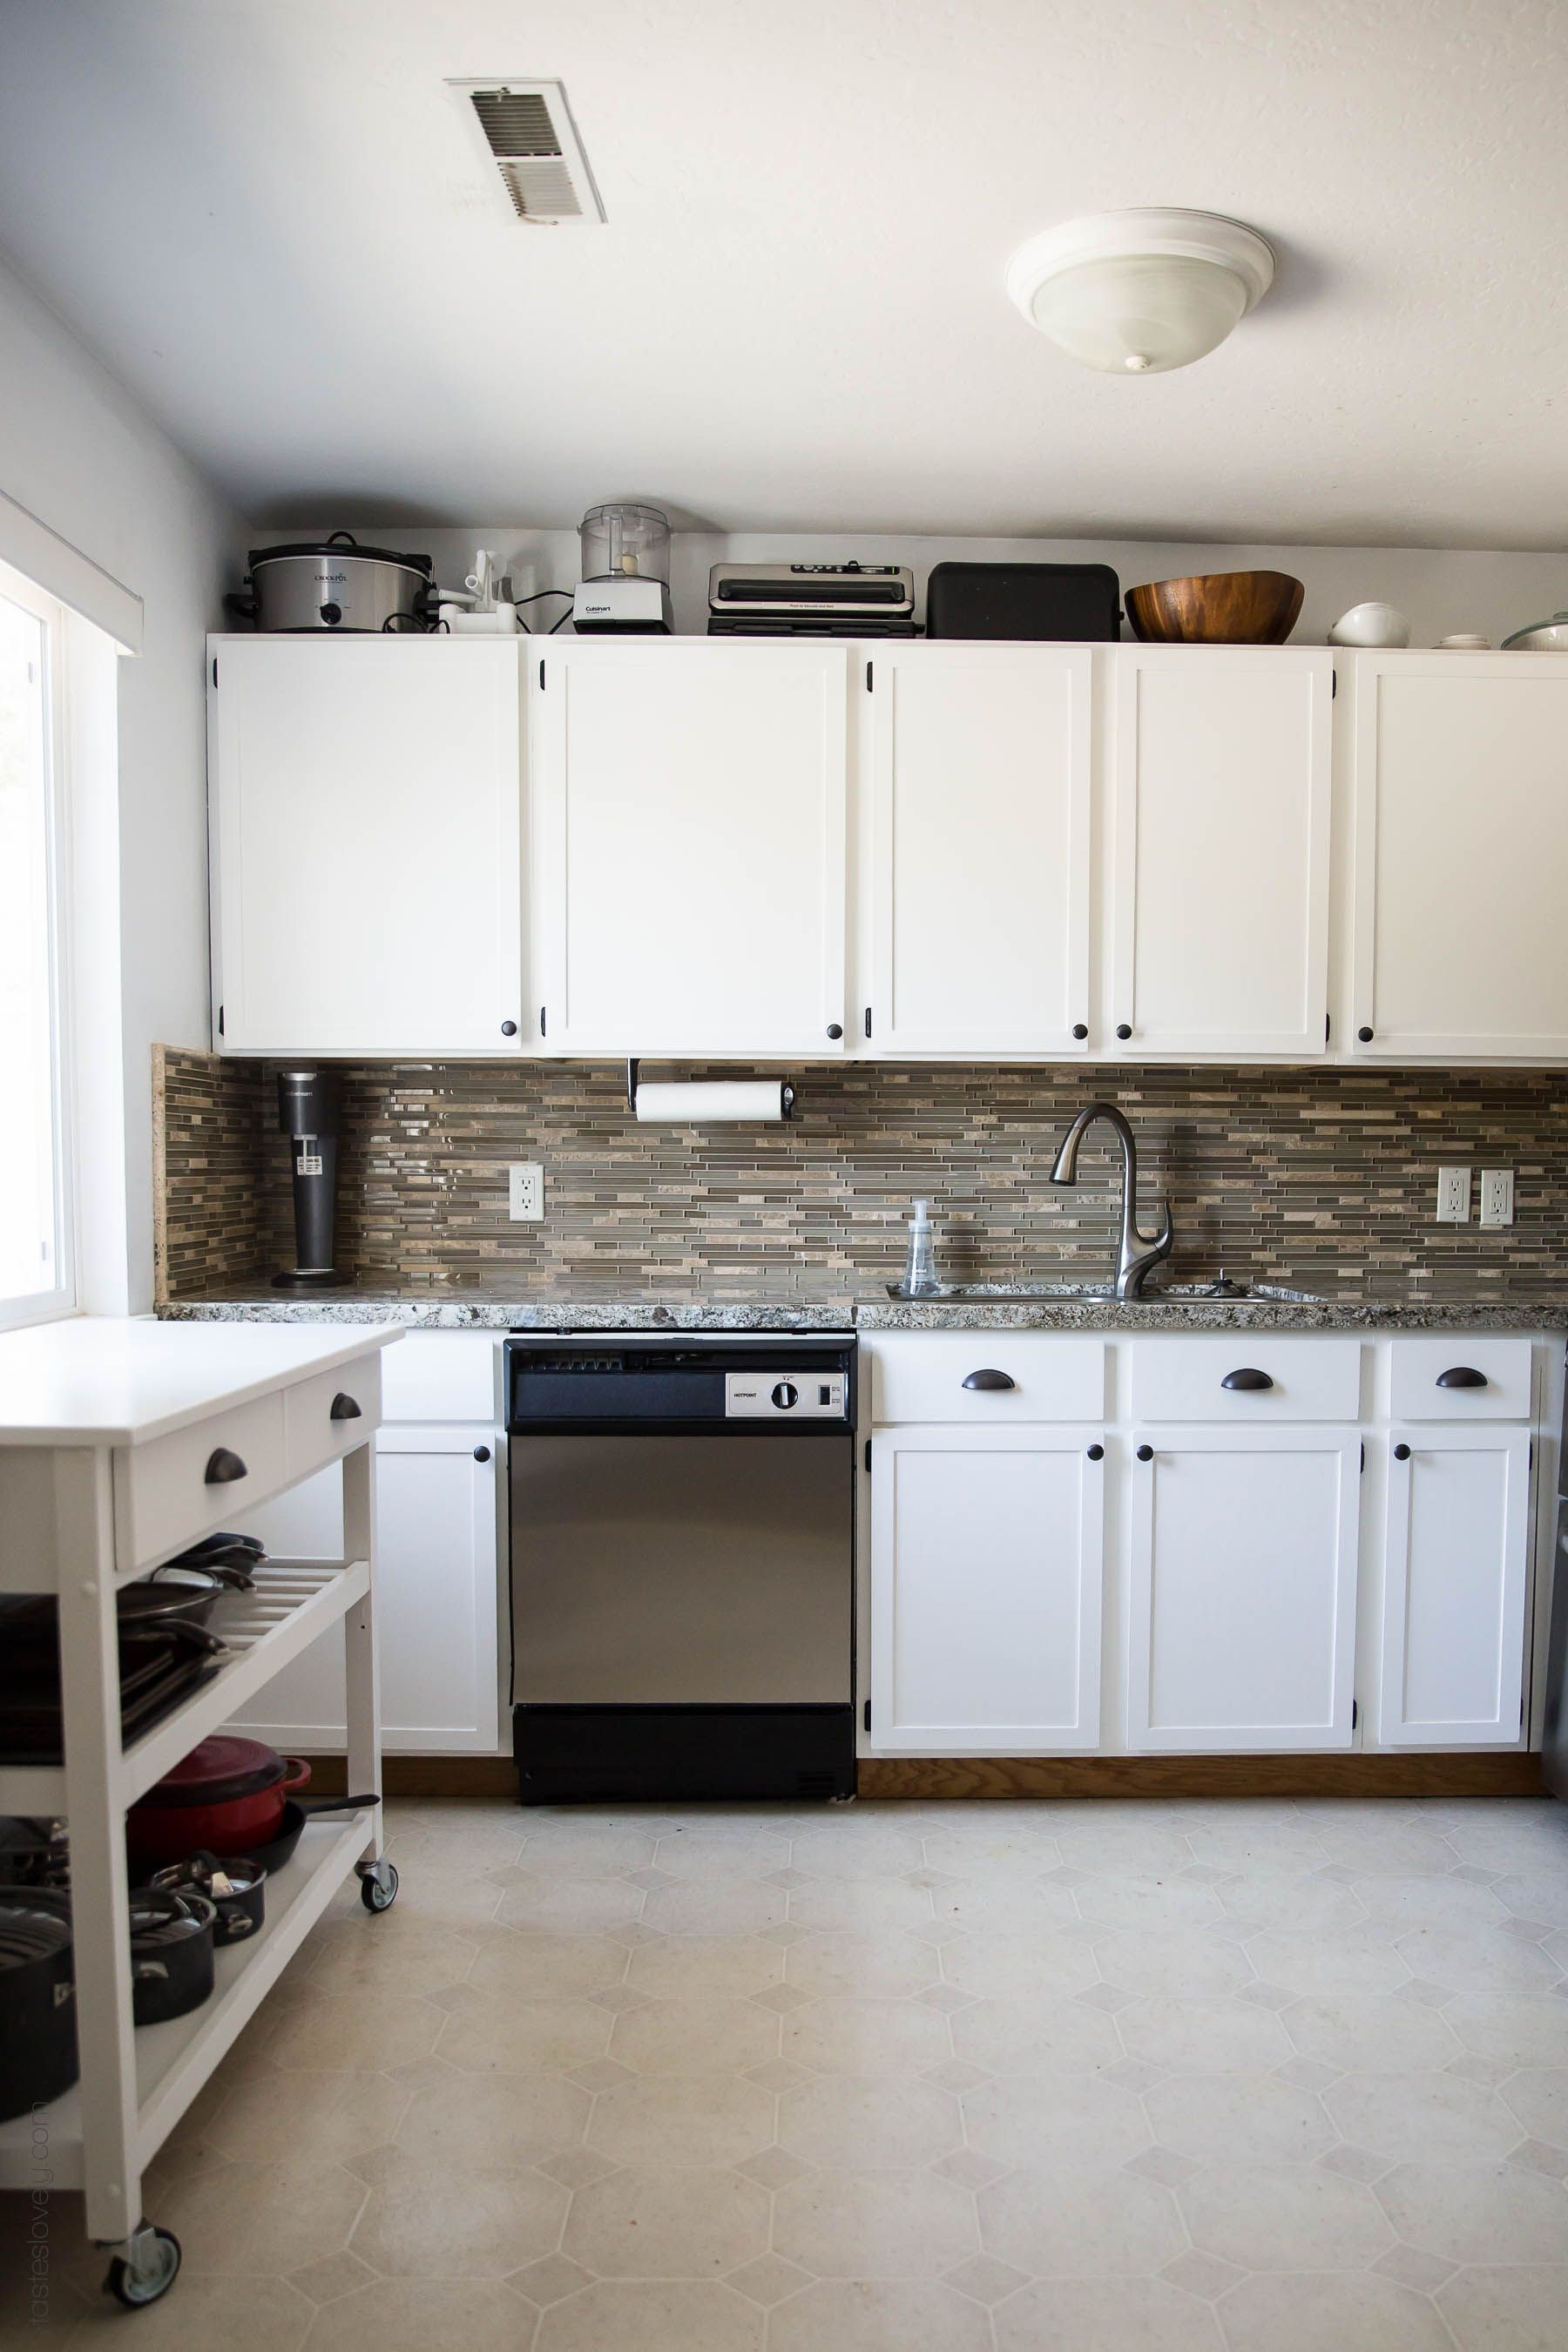 Our $281 DIY Kitchen Remodel   DIY Painting Oak Cabinets White, Adding Wood  Trim To